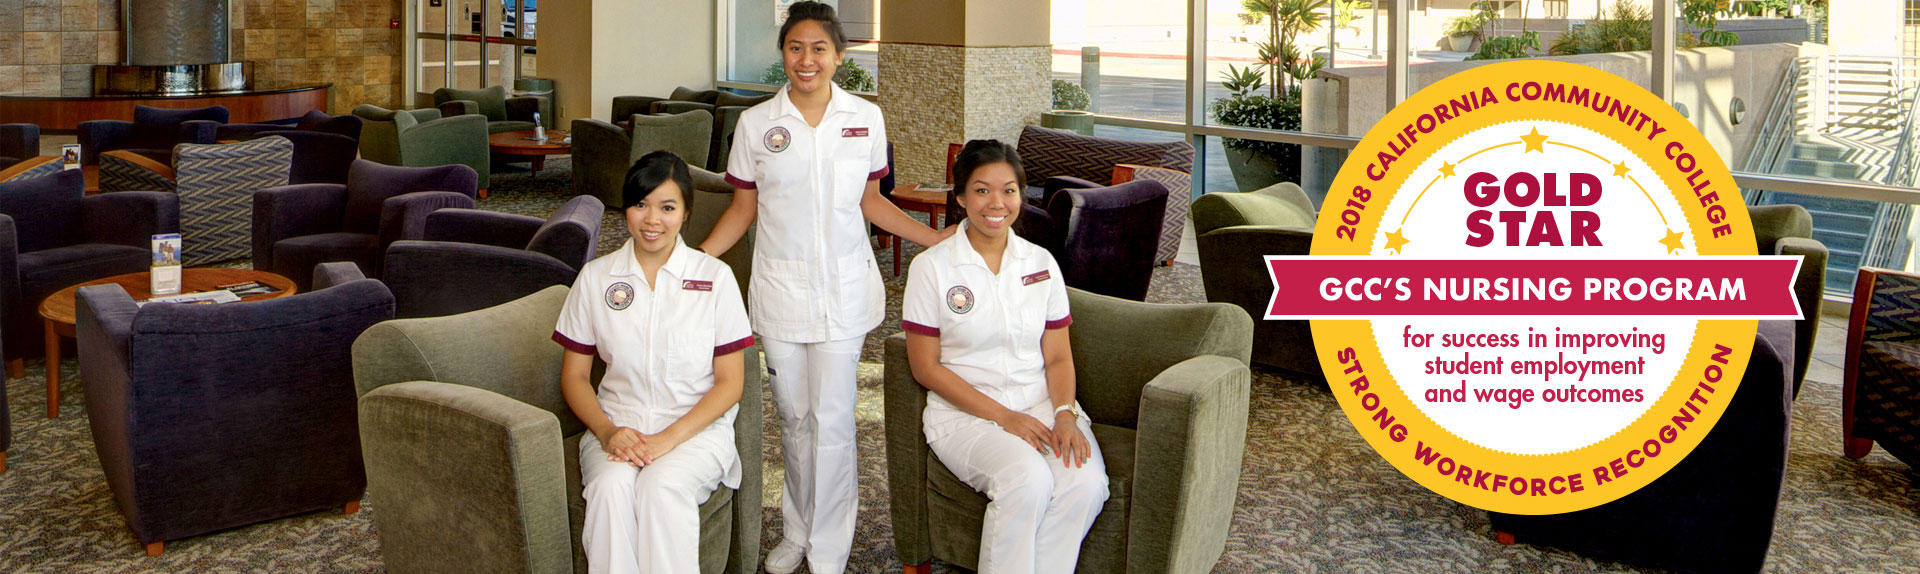 Gold Star GCC's Nursing Program